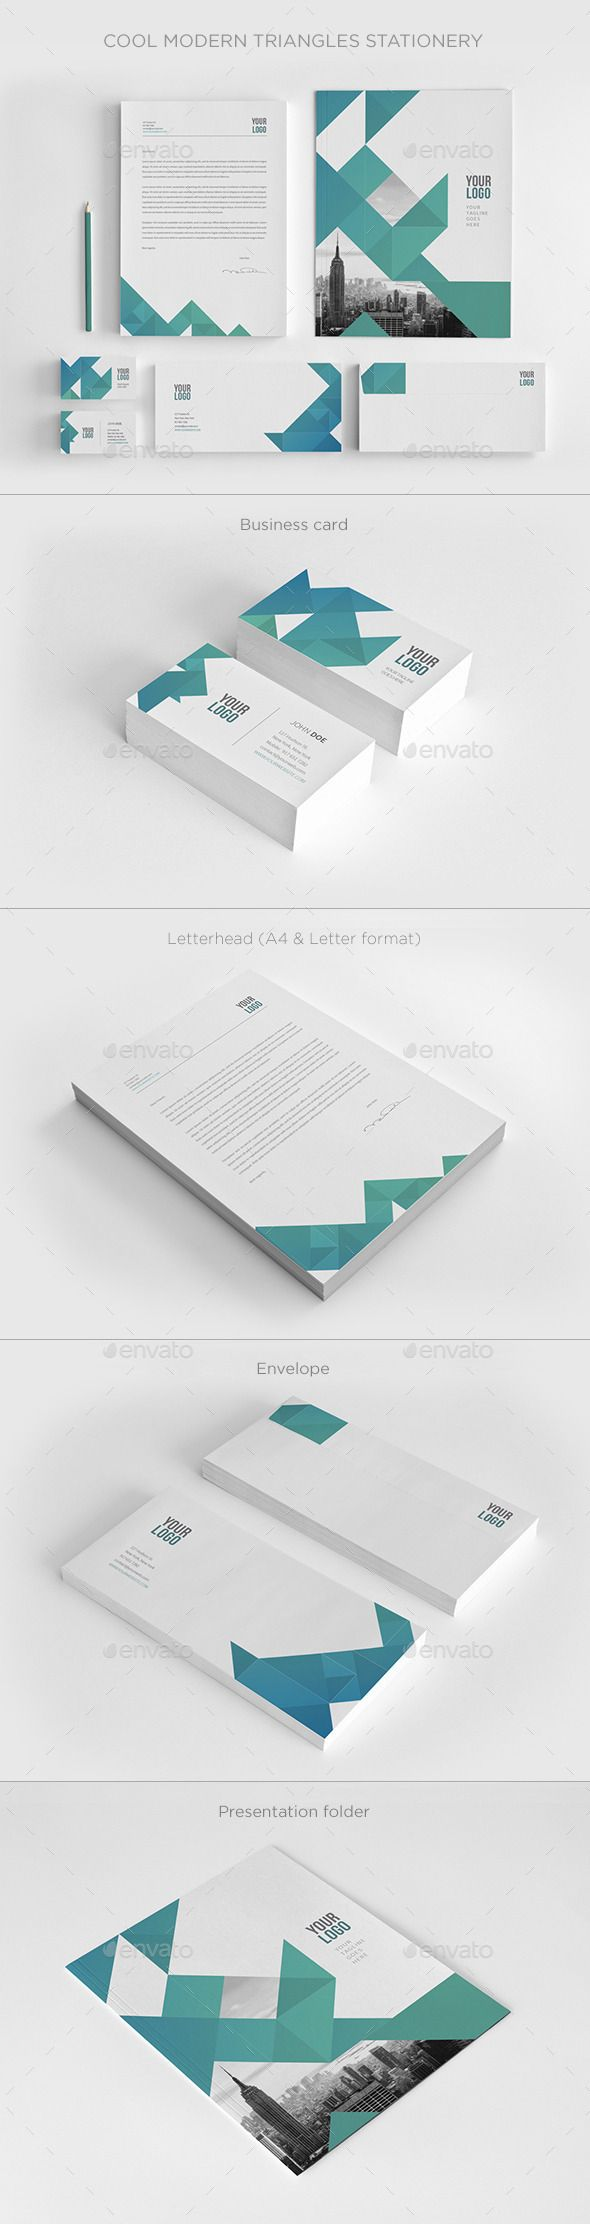 cool modern triangles stationery